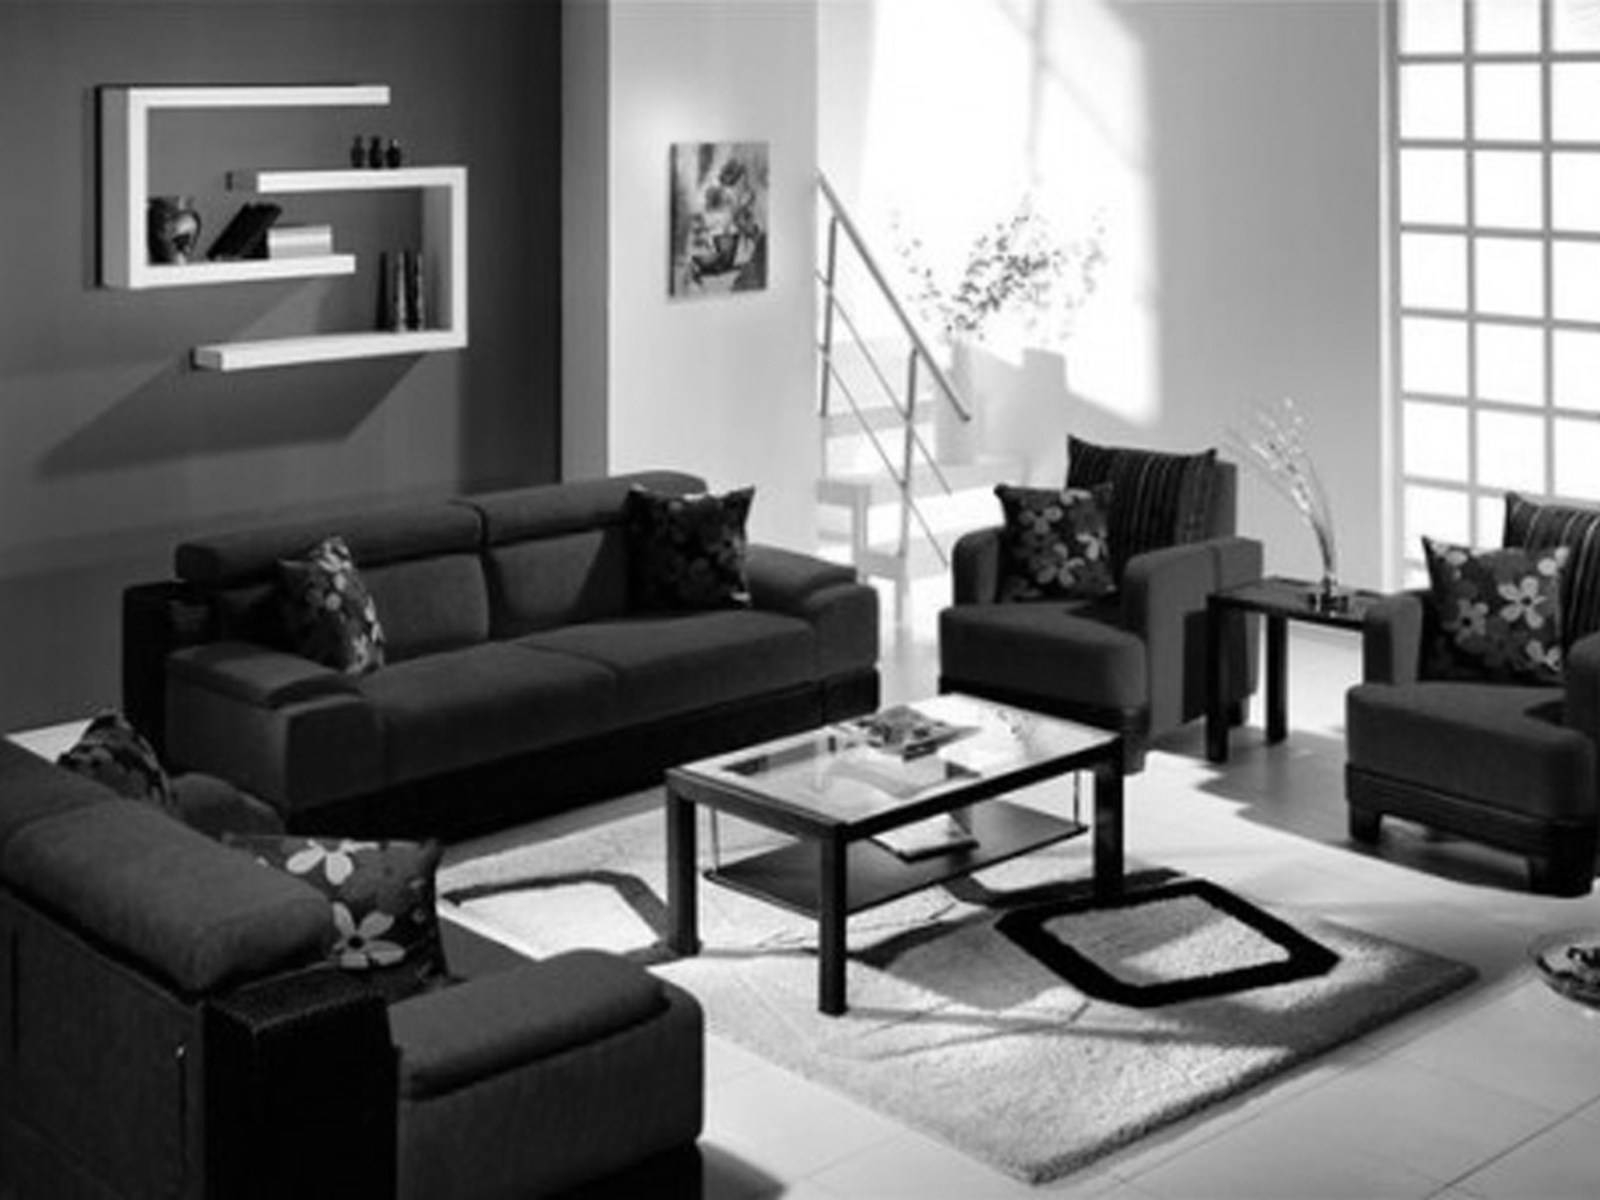 ▻ Sofa : 24 17 Inspiring Wonderful Black And White Contemporary with regard to Black and White Sofas (Image 28 of 30)